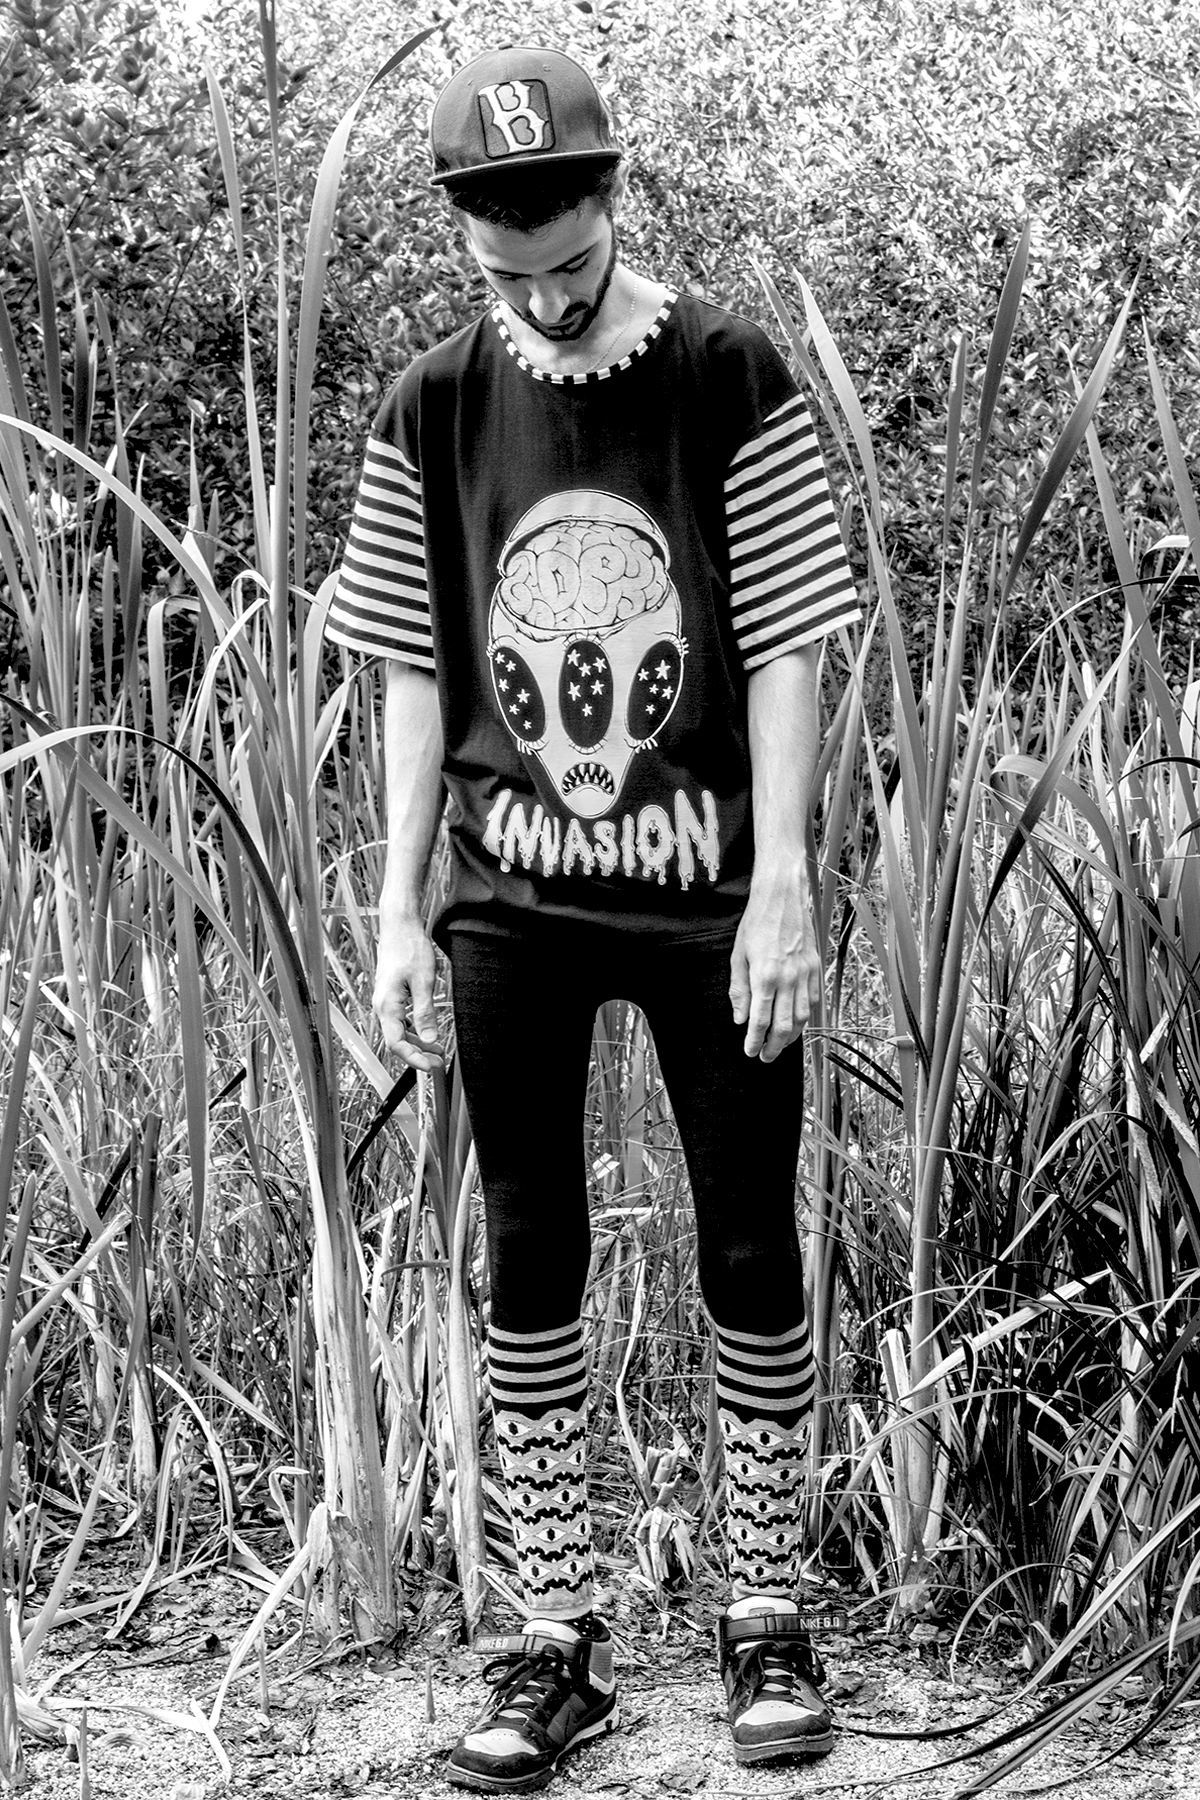 Daniel Palillo SS/13 Invasion Print Tee and Aw/13 Multi Eyes Knit Leggins